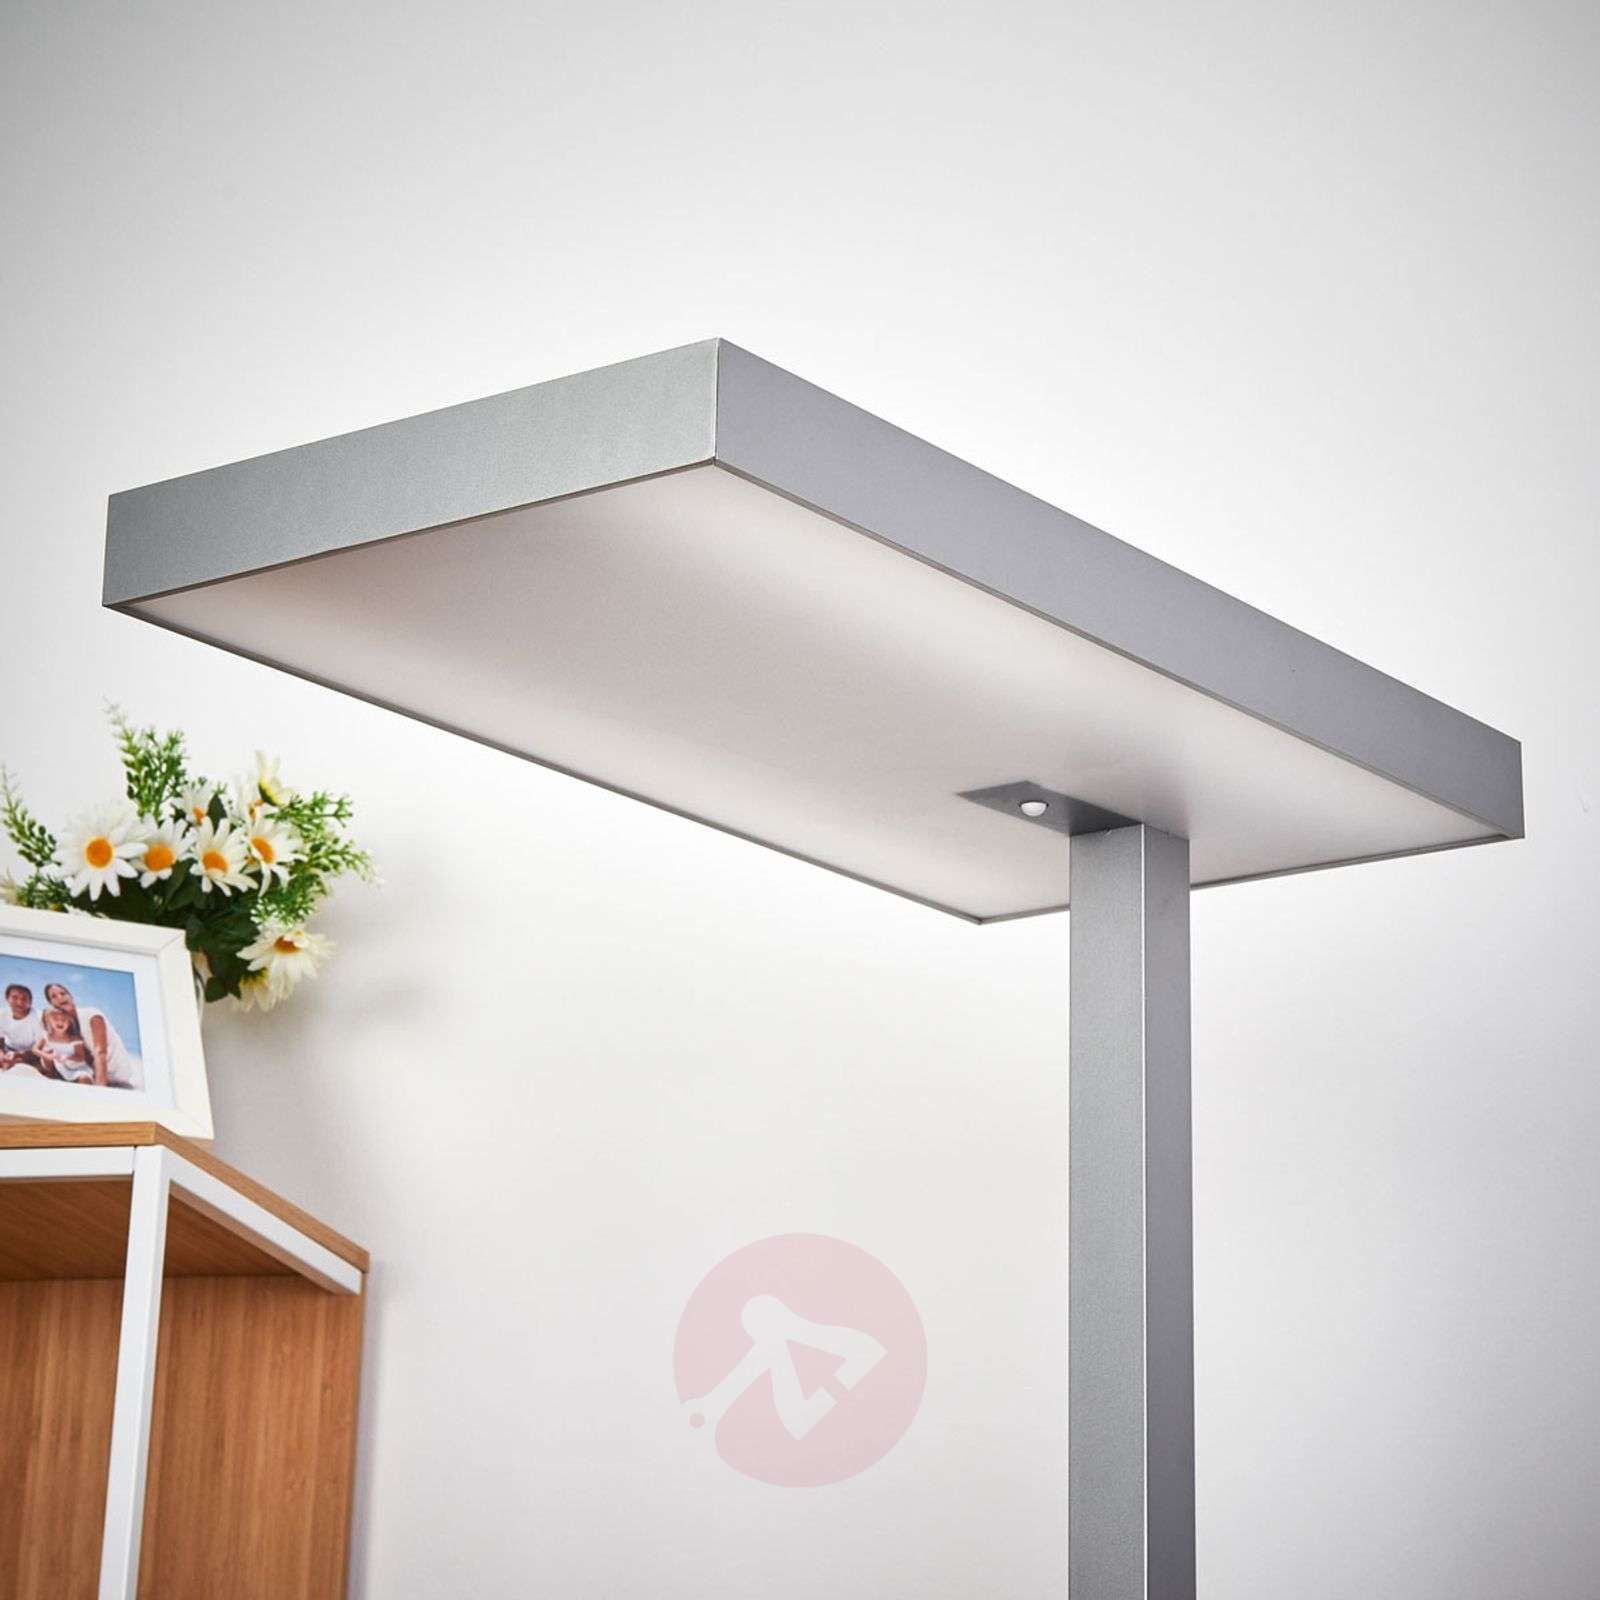 Office led floor lamp nora with motion detector lightscouk for Led floor lamps for office